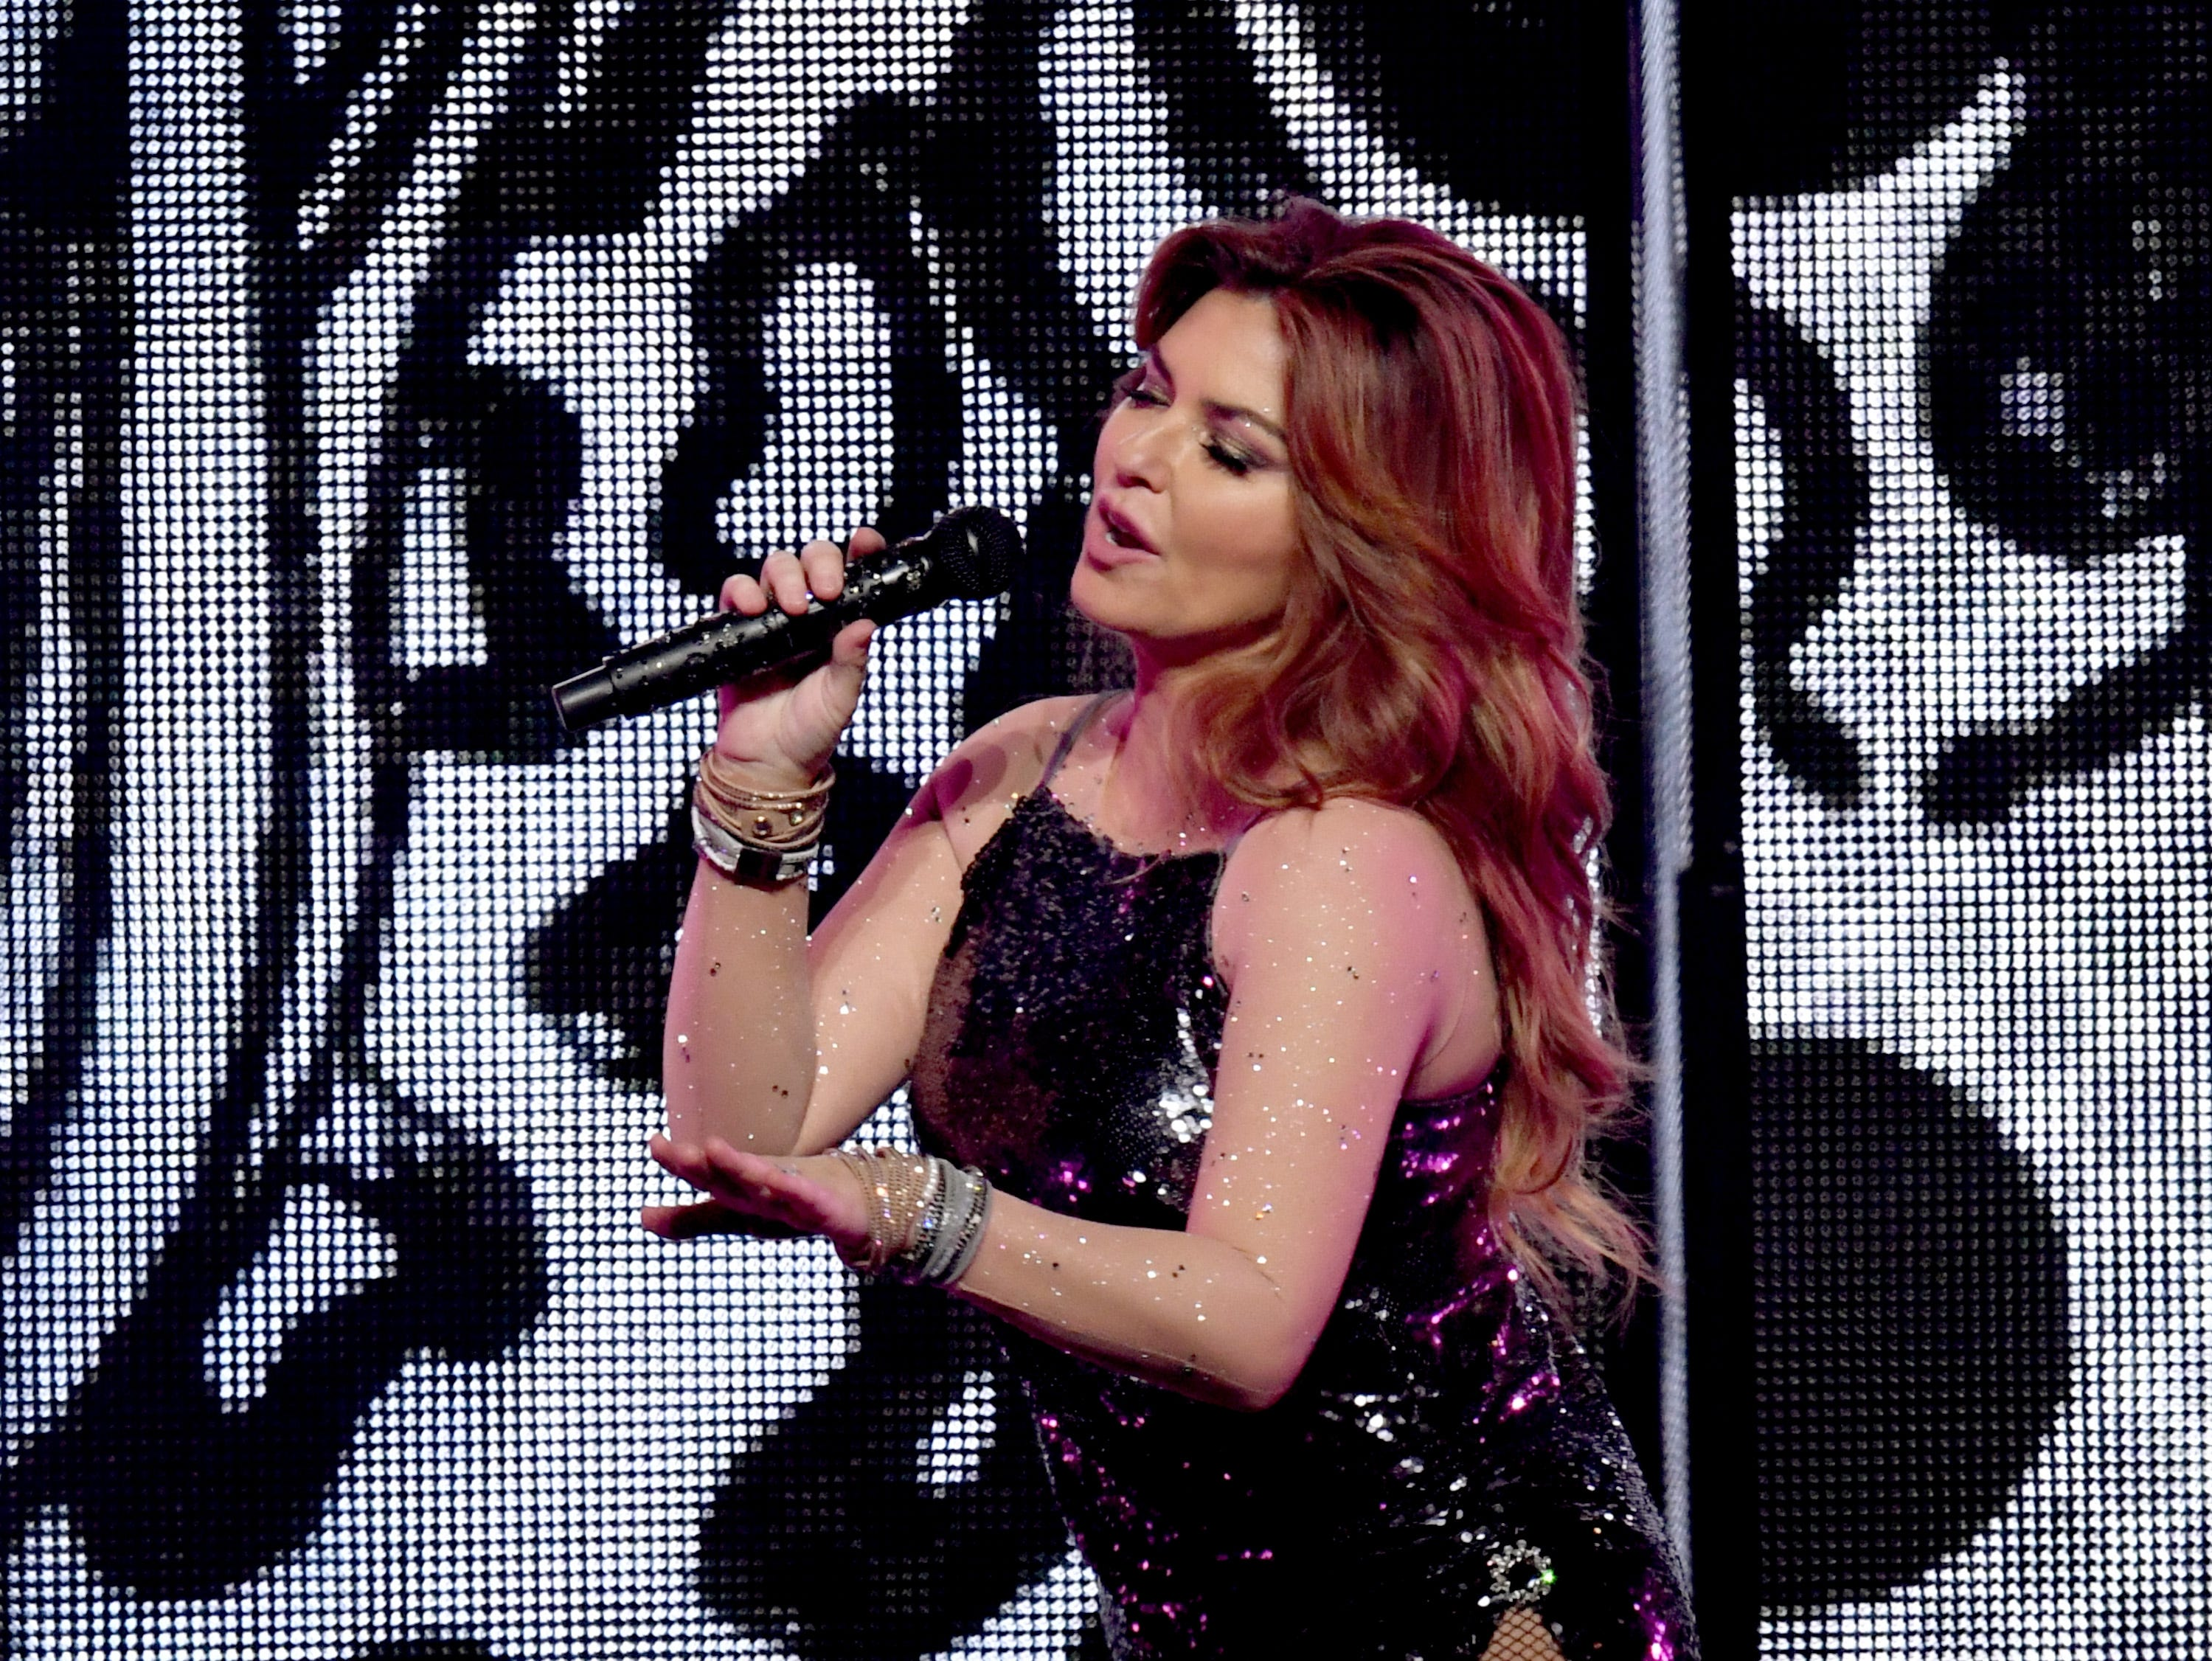 """In an April 2018 interview with The Guardian, Canadian Shania Twain said she would have voted for Trump. """"I would have voted for him because, even though he was offensive, he seemed honest,"""" she said. She later backpedaled from her remarks, apologizing for her """"awkward"""" answer and saying the question caught her off guard."""